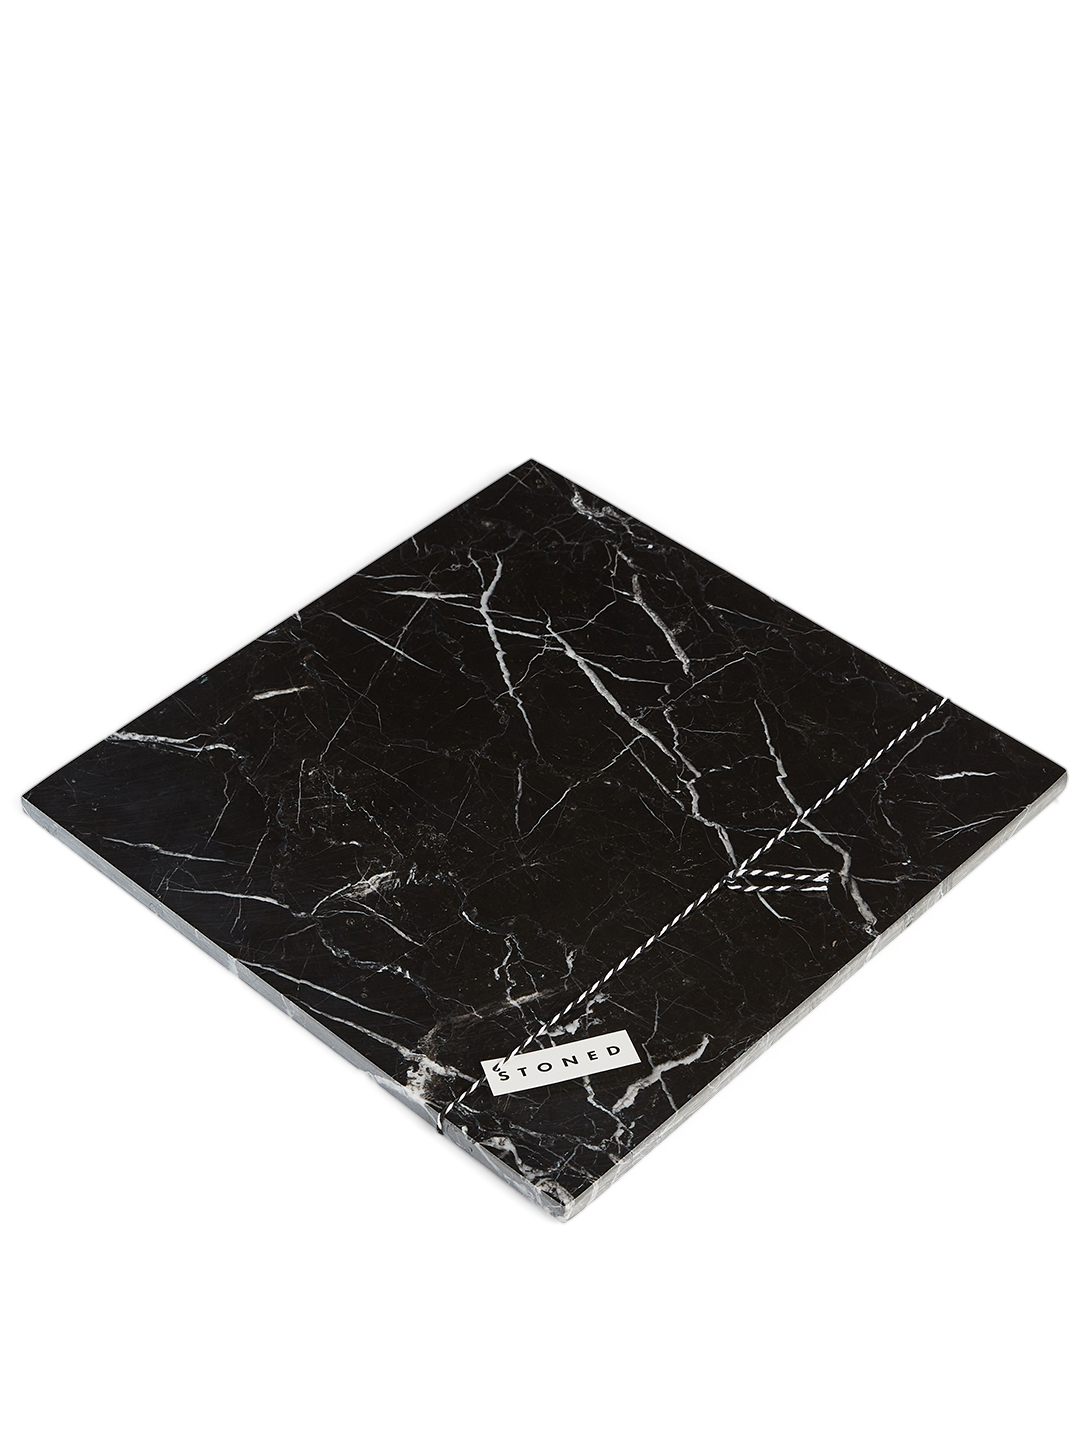 STONED MARBLE Medium Marble Square Serving Board Gifts Black